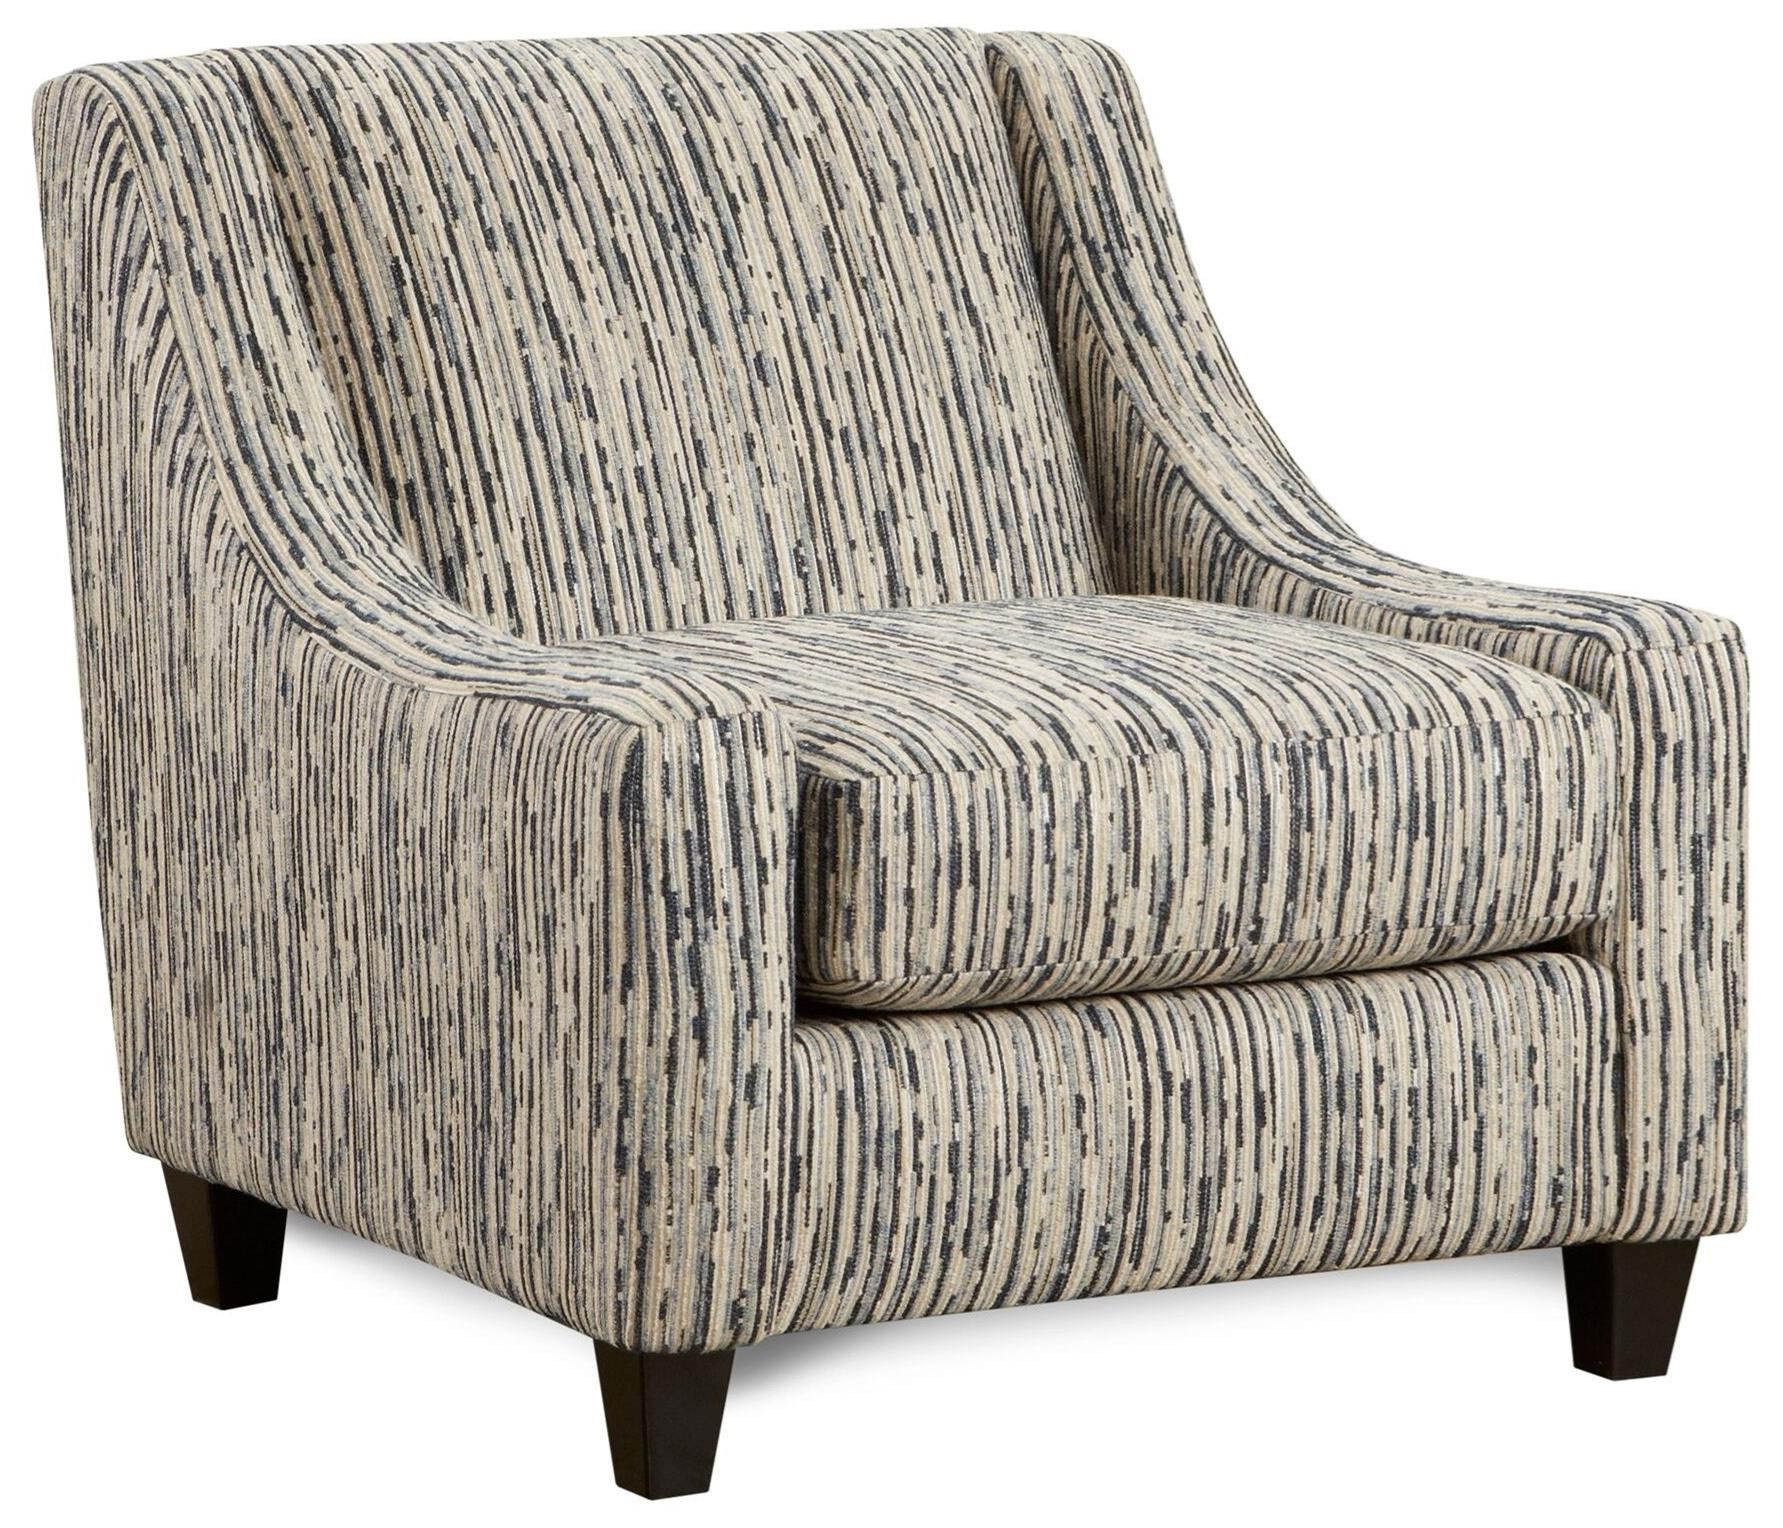 552 Accent Chair by Fusion Furniture at Furniture Superstore - Rochester, MN